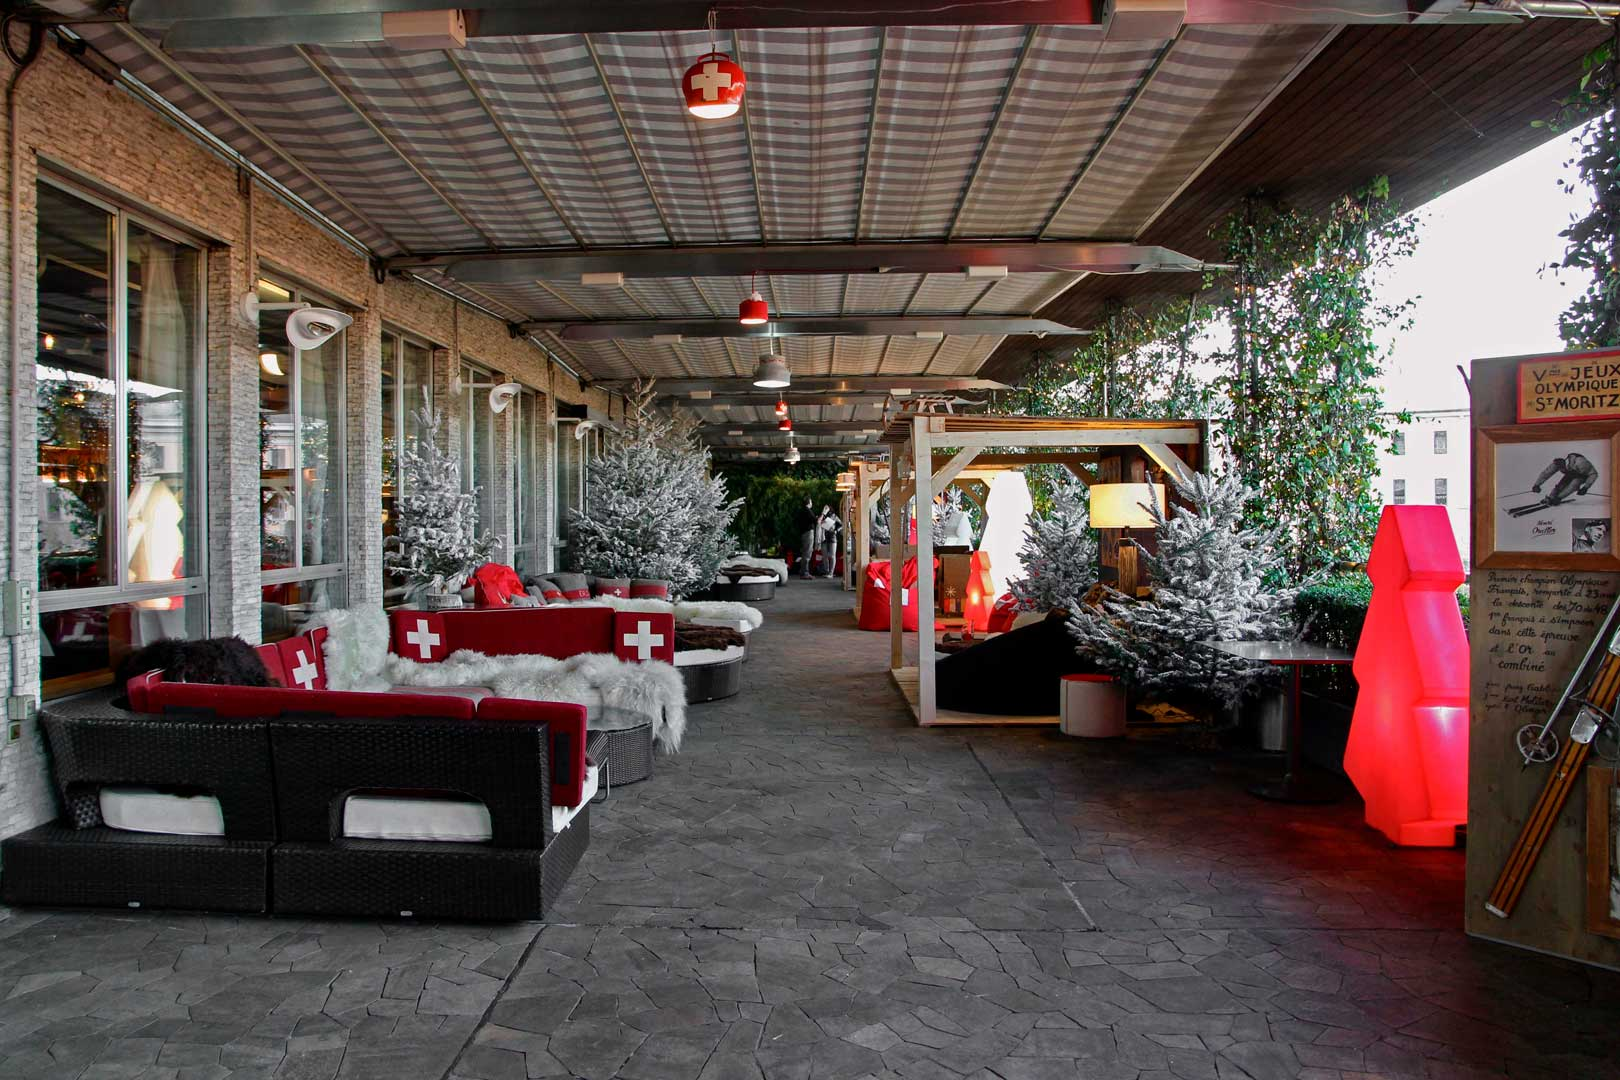 Swiss Winter Lounge - La Terrazza di Via Palestro